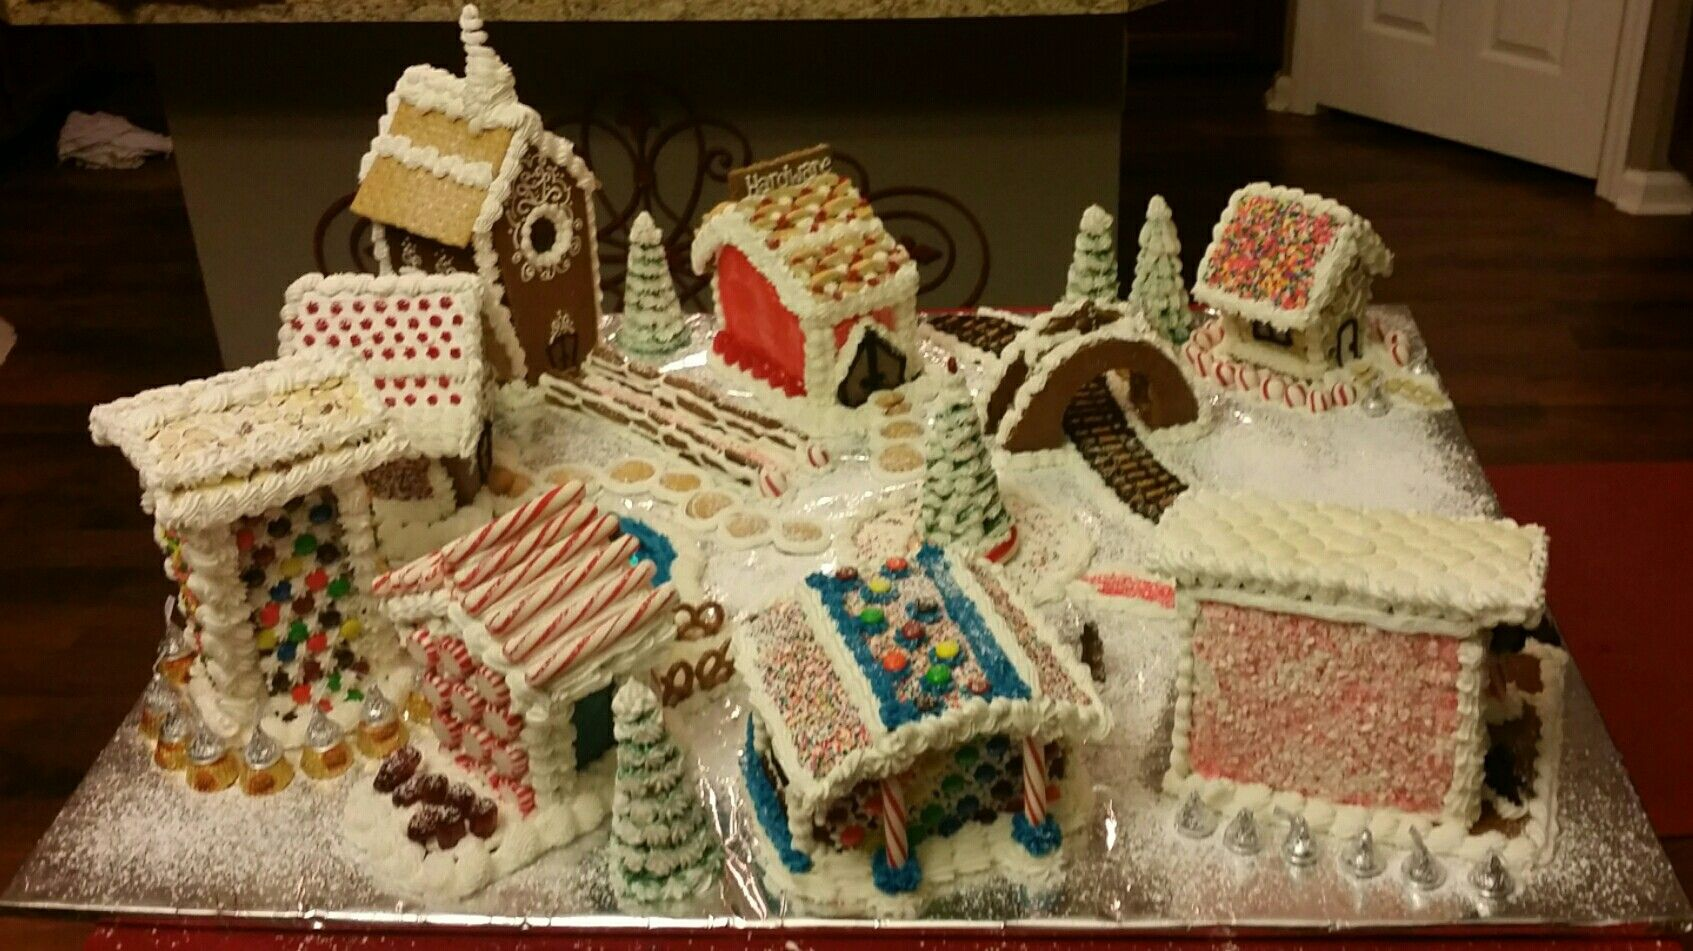 Final Gingerbread Village As Presented At The Jacksonville Historical Society S Gingerbread Extravaganza 2016 I W Gingerbread Village Gingerbread Extravaganza